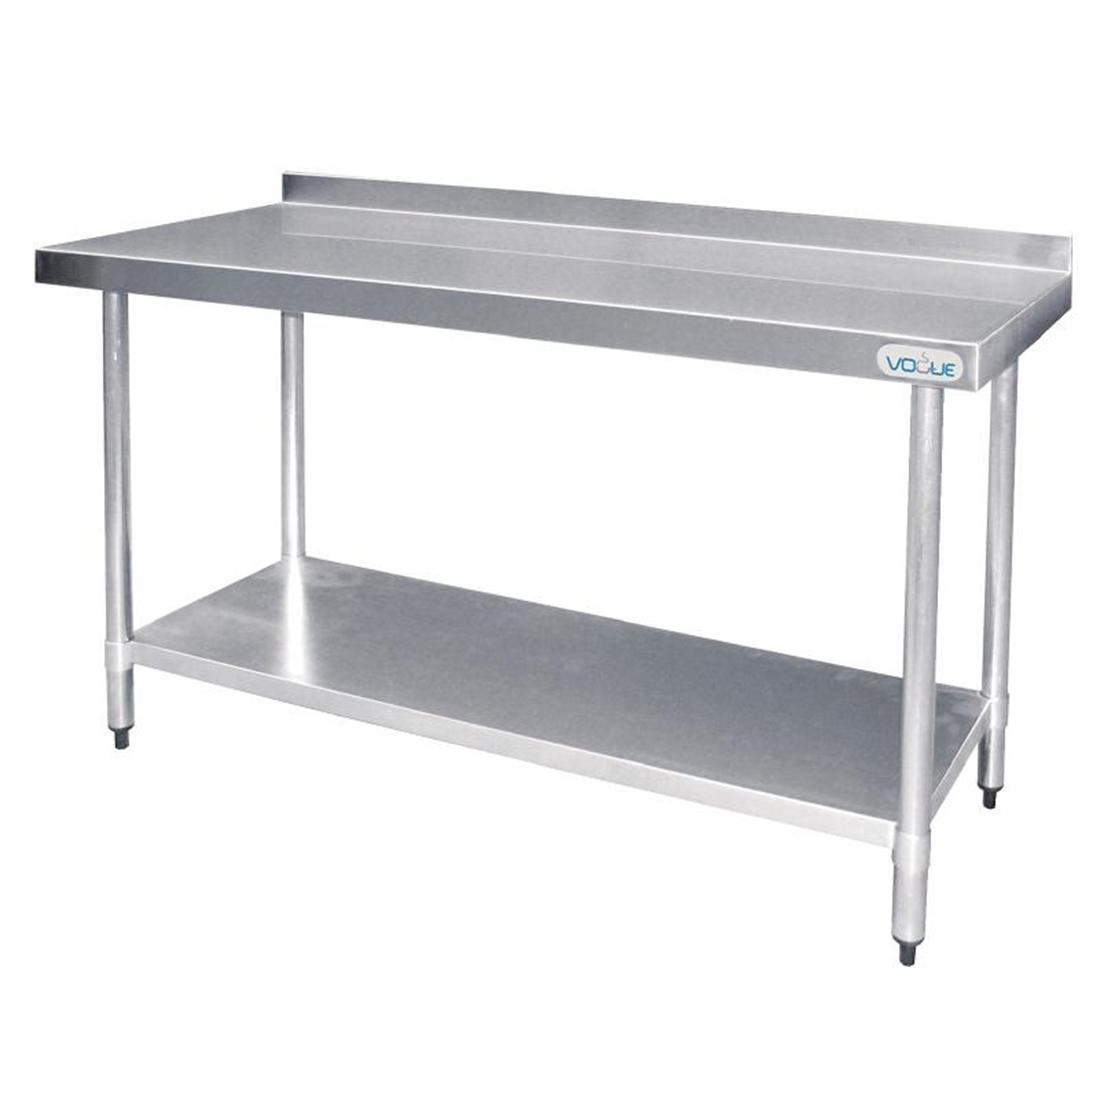 Vogue Stainless Steel Prep Table with Upstand 1200mm - T381